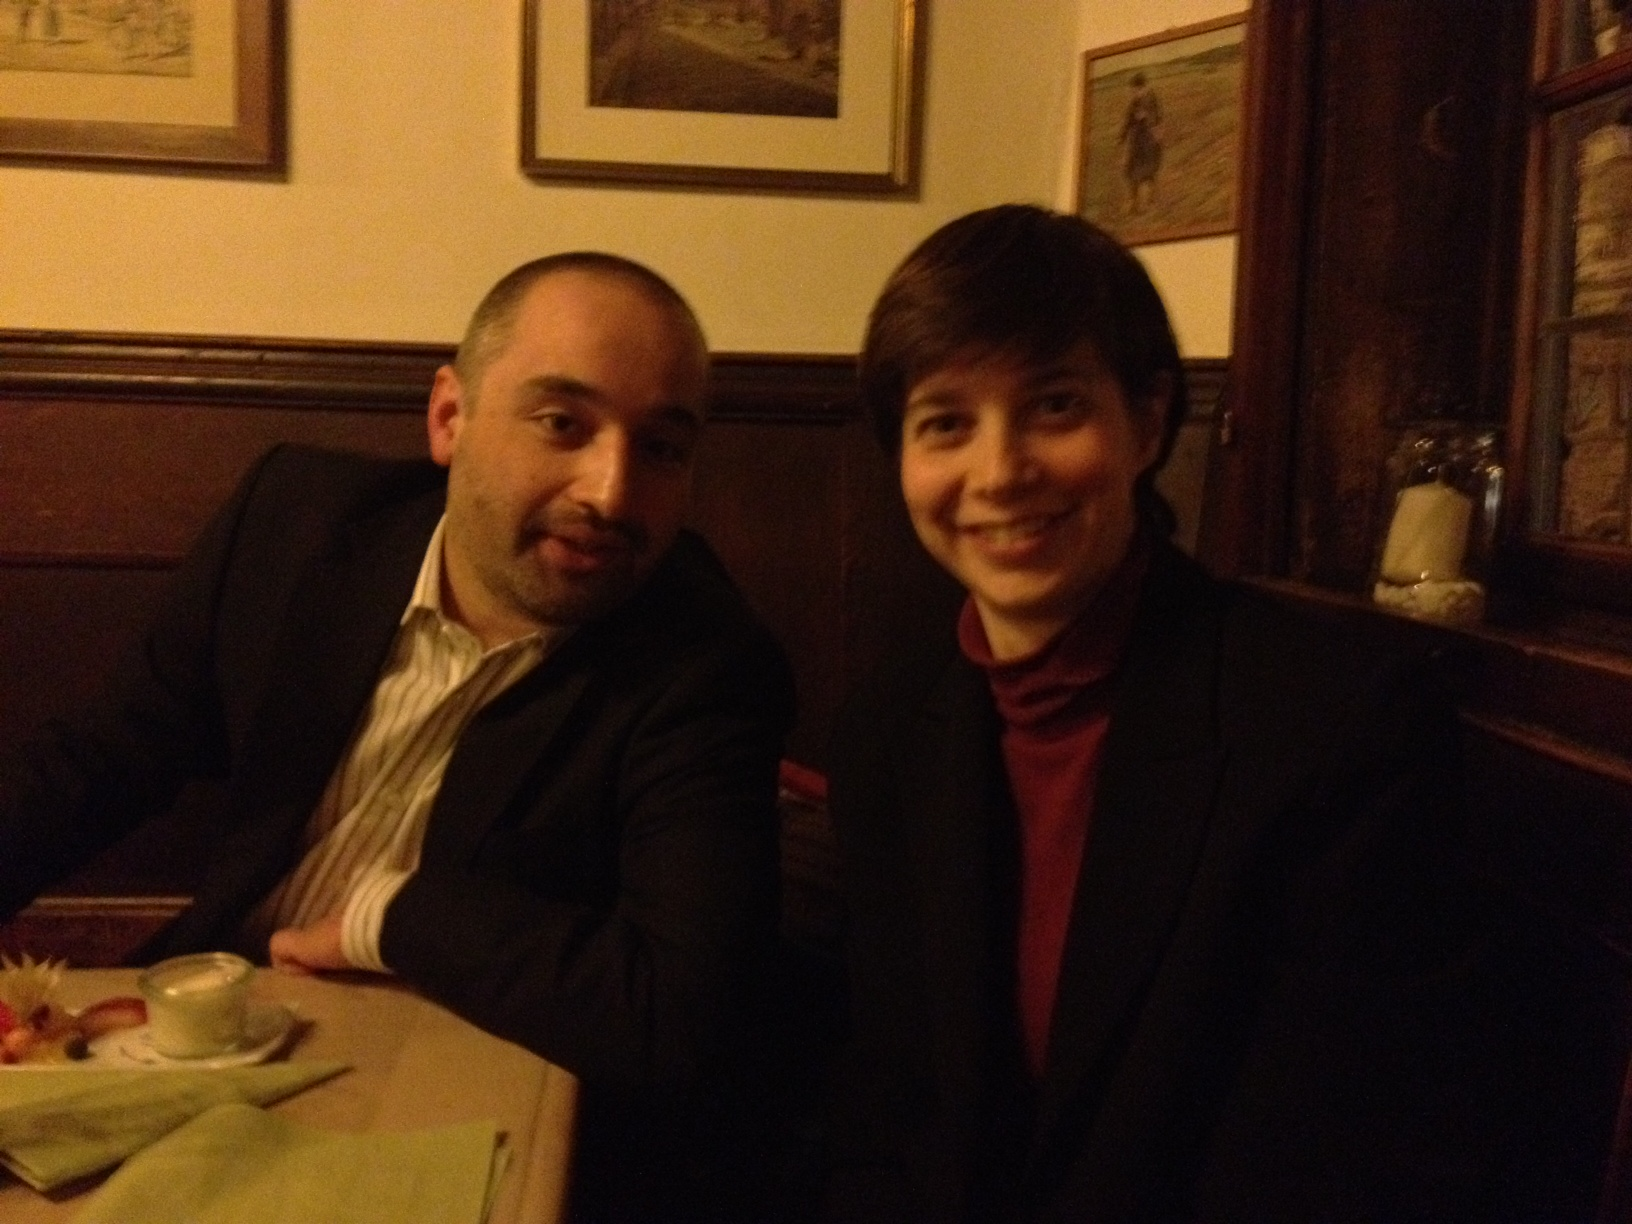 Dinner with our collaborators at Marburg University